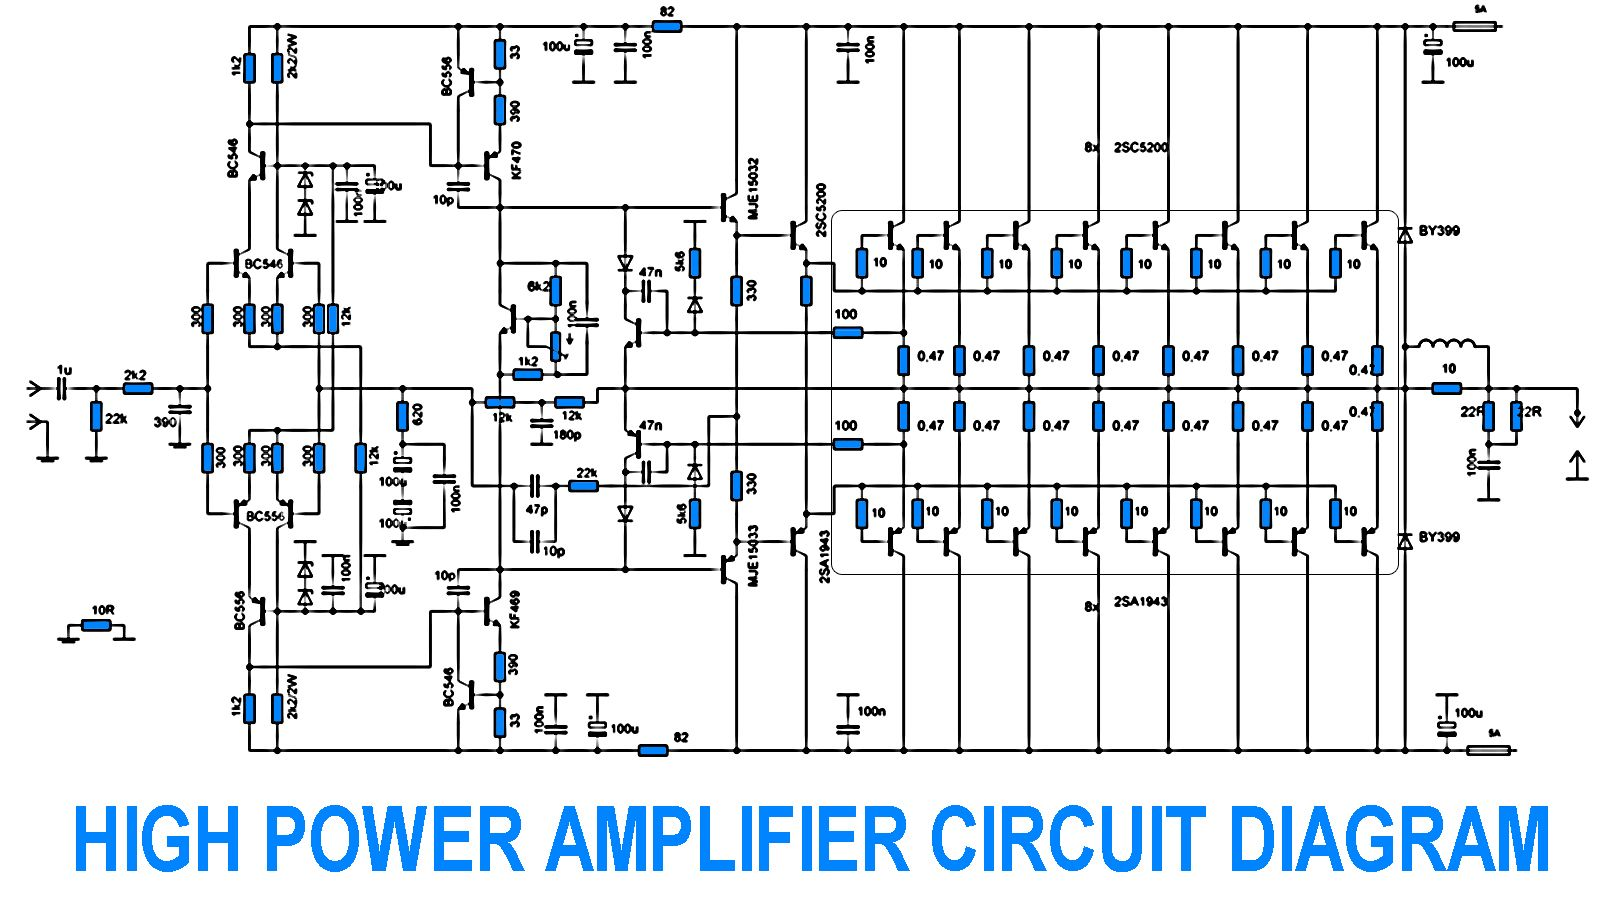 700W Power Amplifier with 2SC5200, 2SA1943 | Other Project's in 2019 | Audio amplifier, Diy